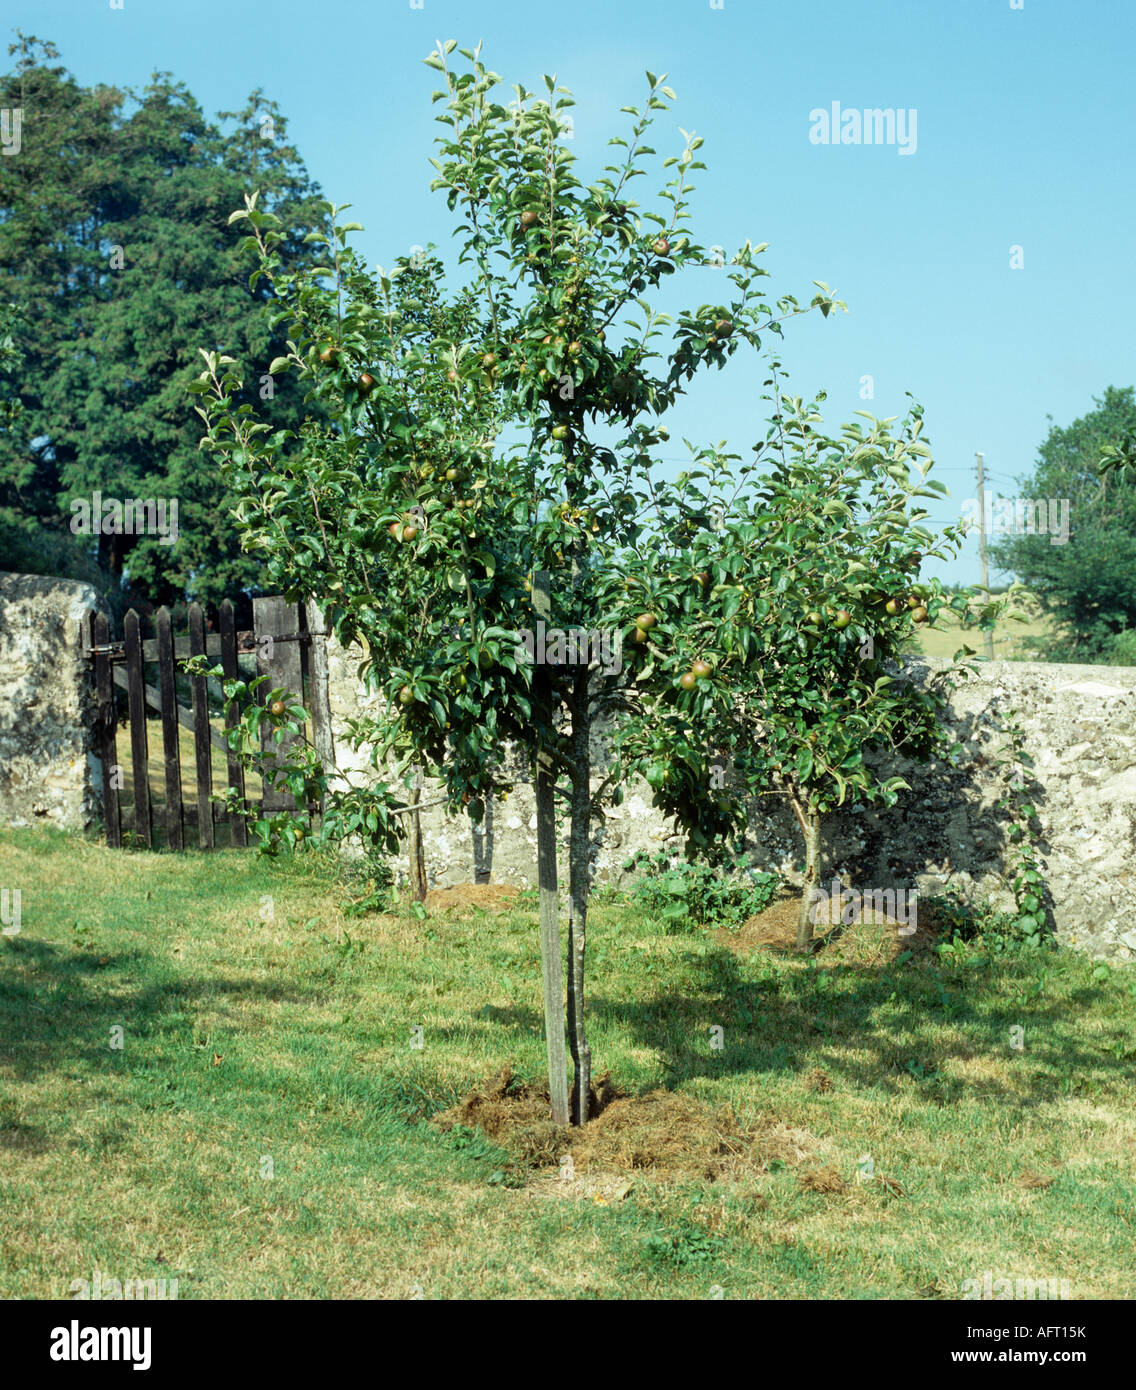 Young apple tree mulched with grass cuttings in walled domestic orchard - Stock Image